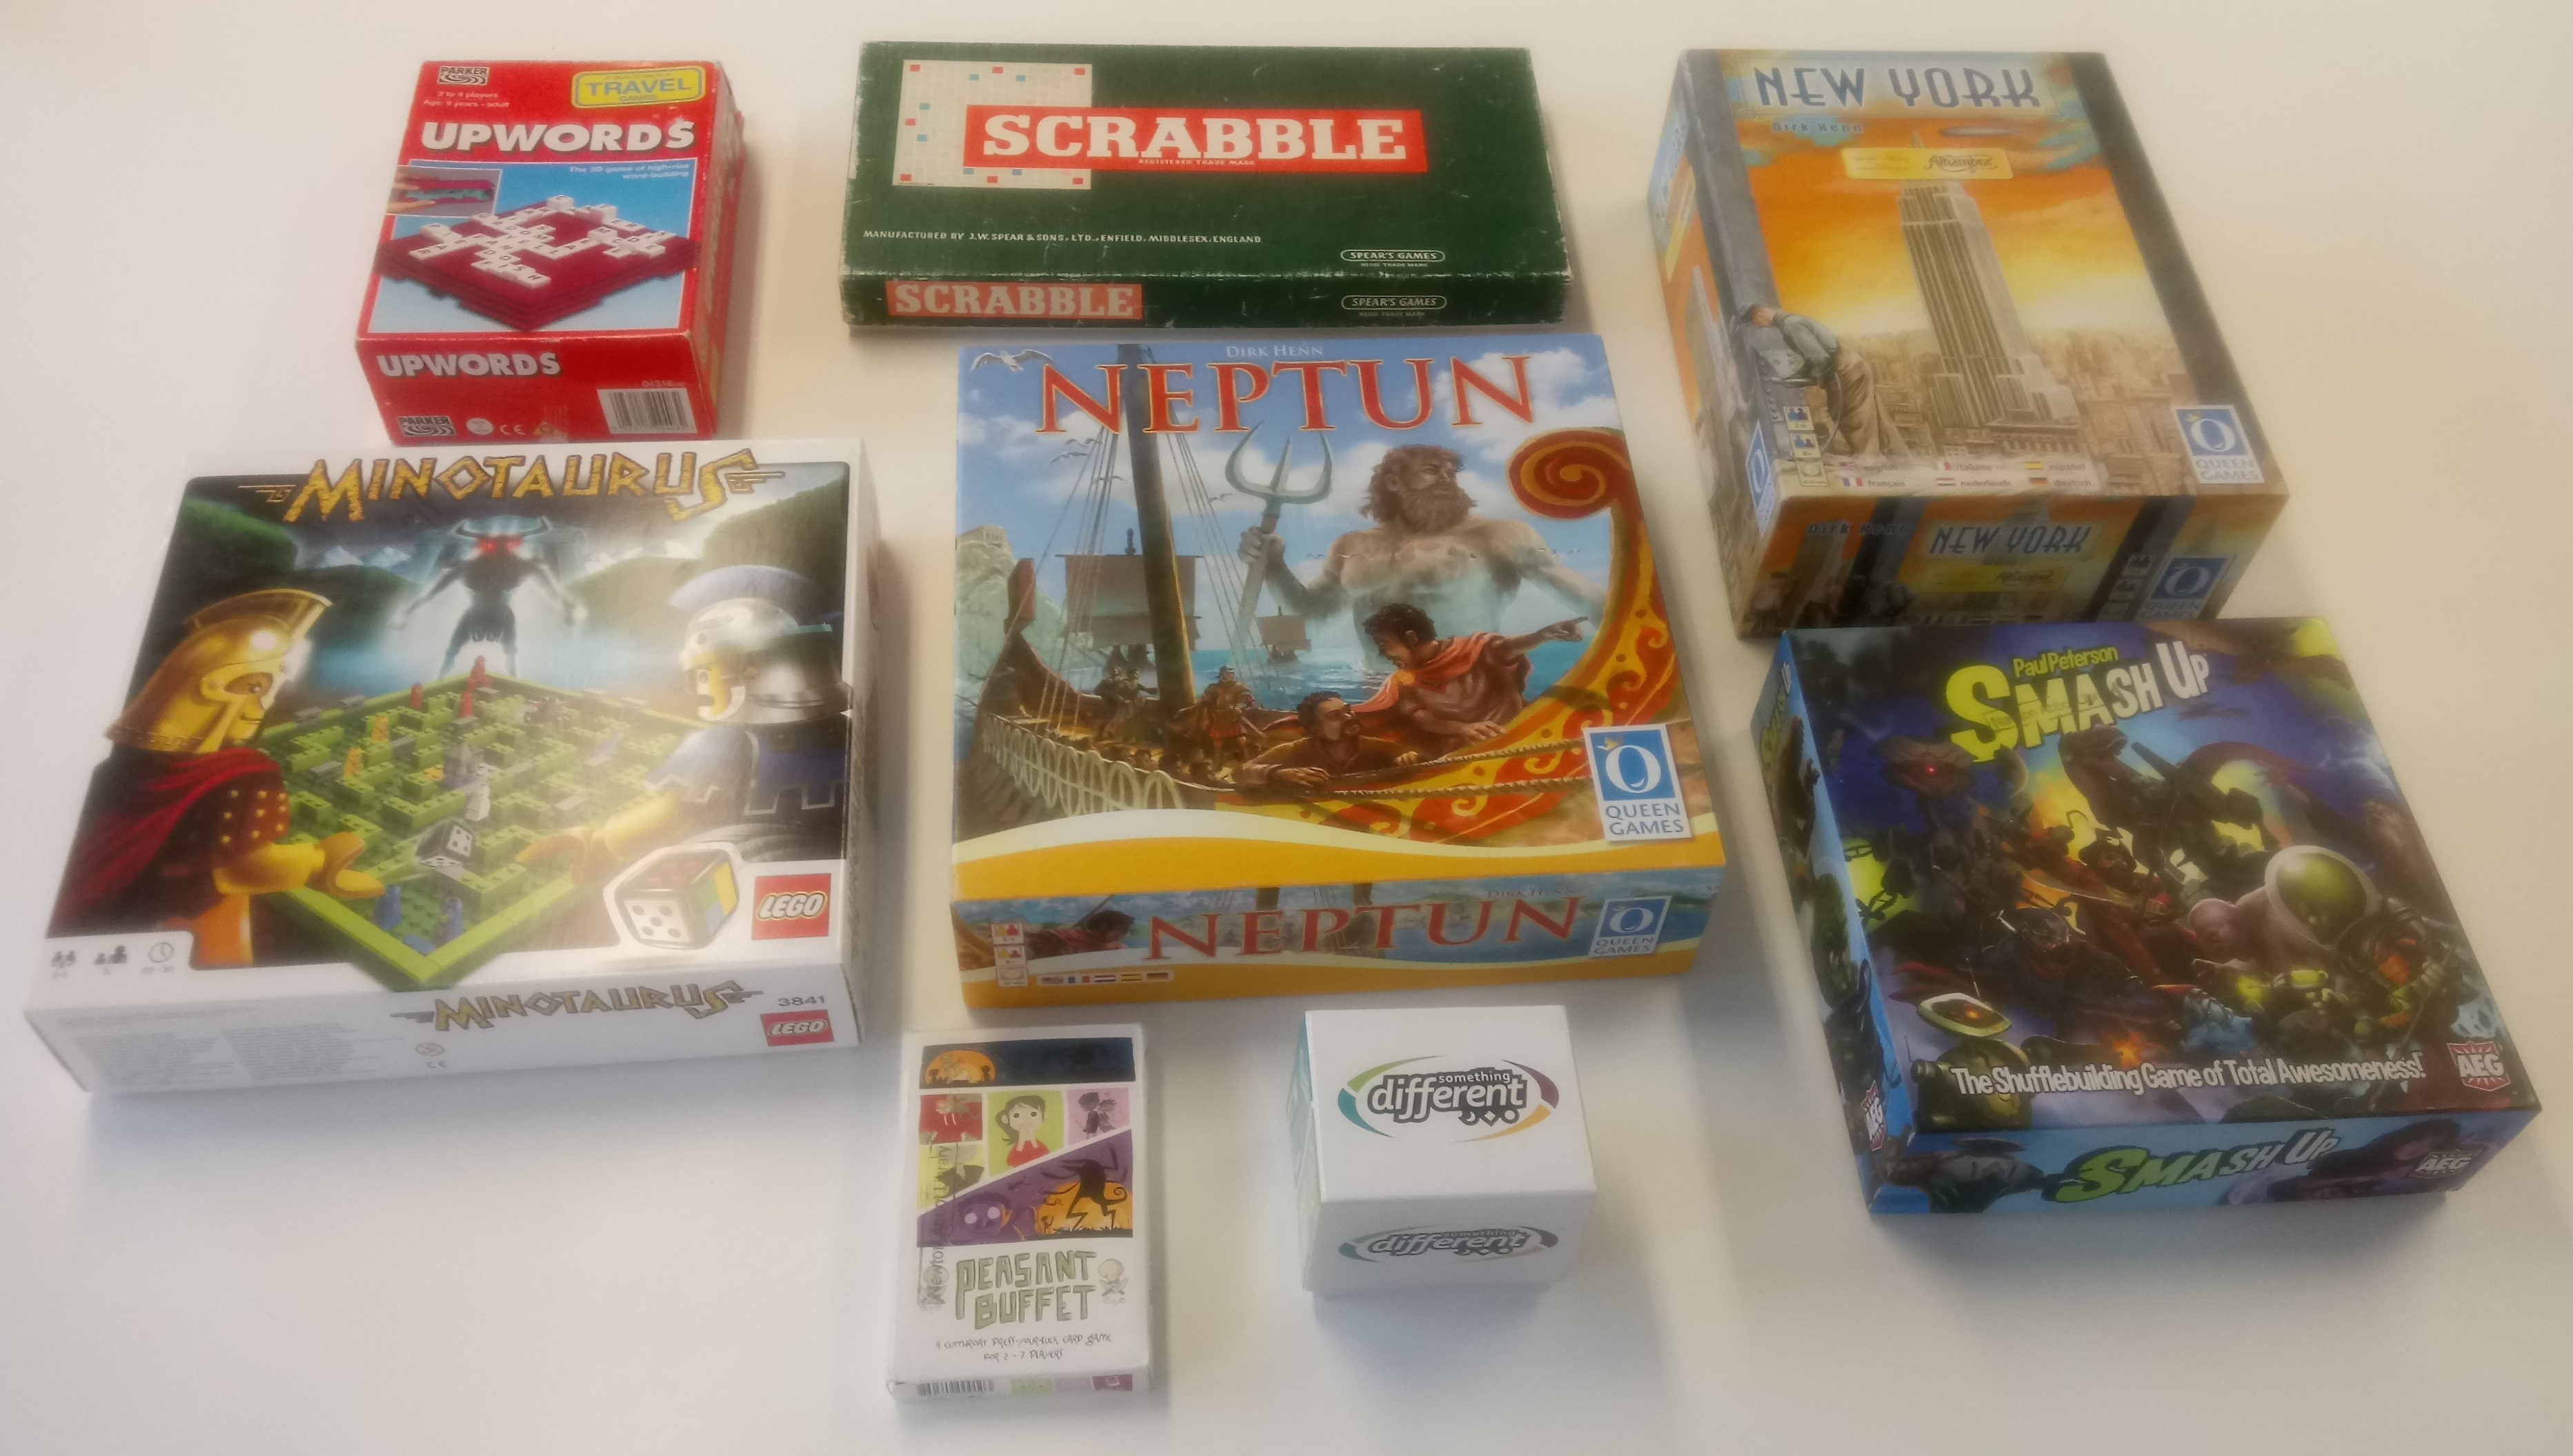 Drop in and play tabletop games at Crediton Library. Choose from the range of new or traditional games.